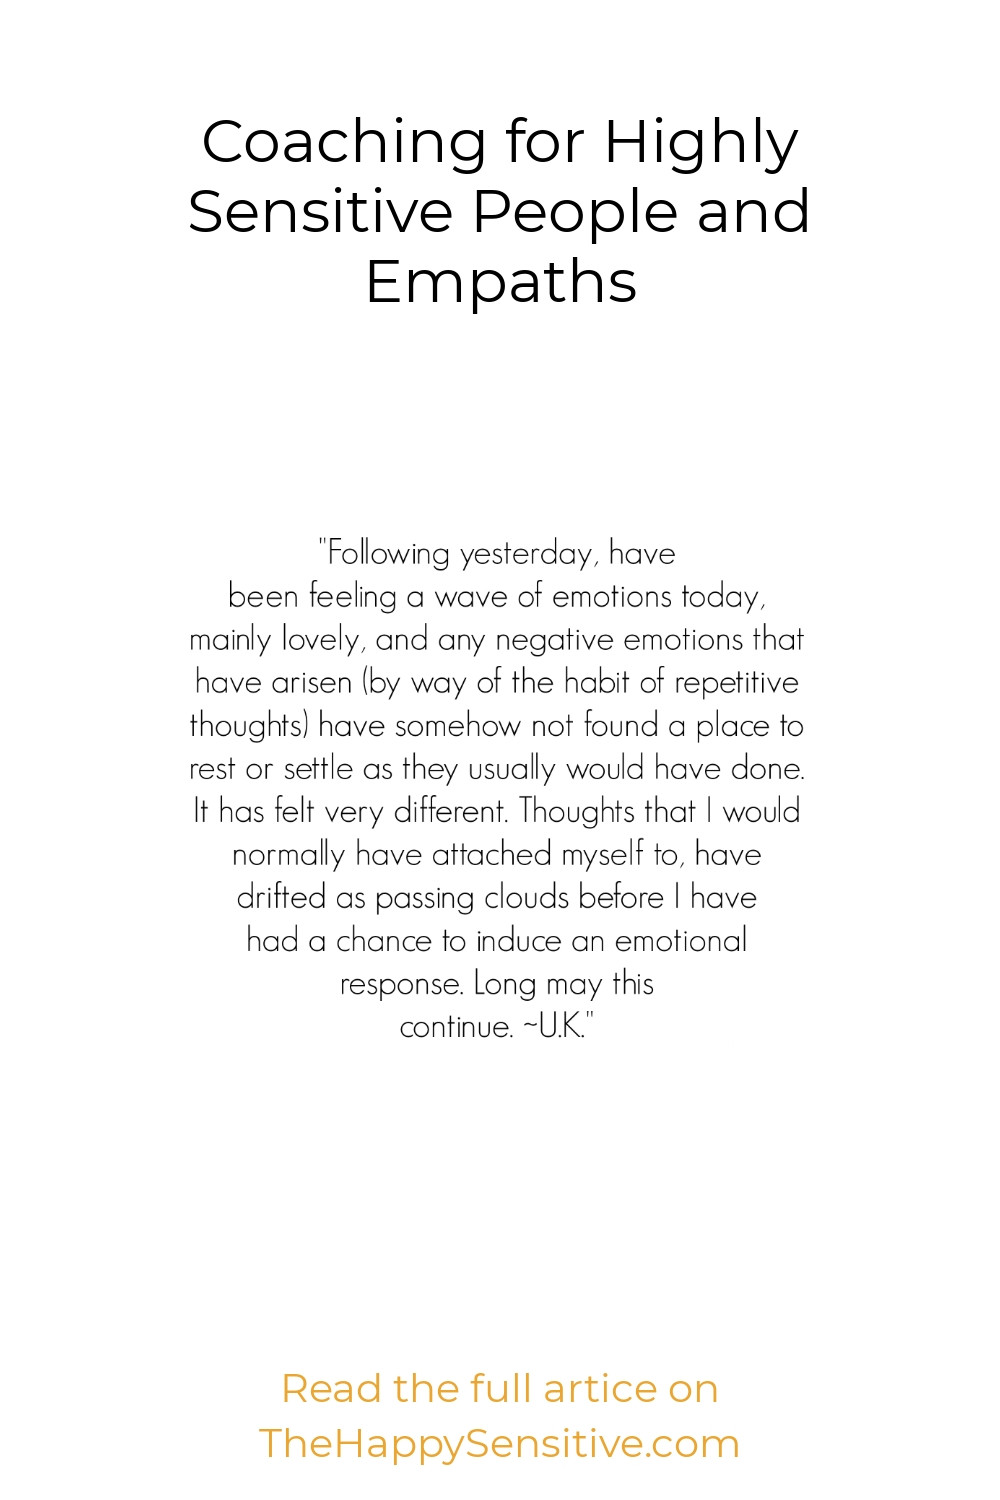 Coaching for Highly Sensitive People and Empaths